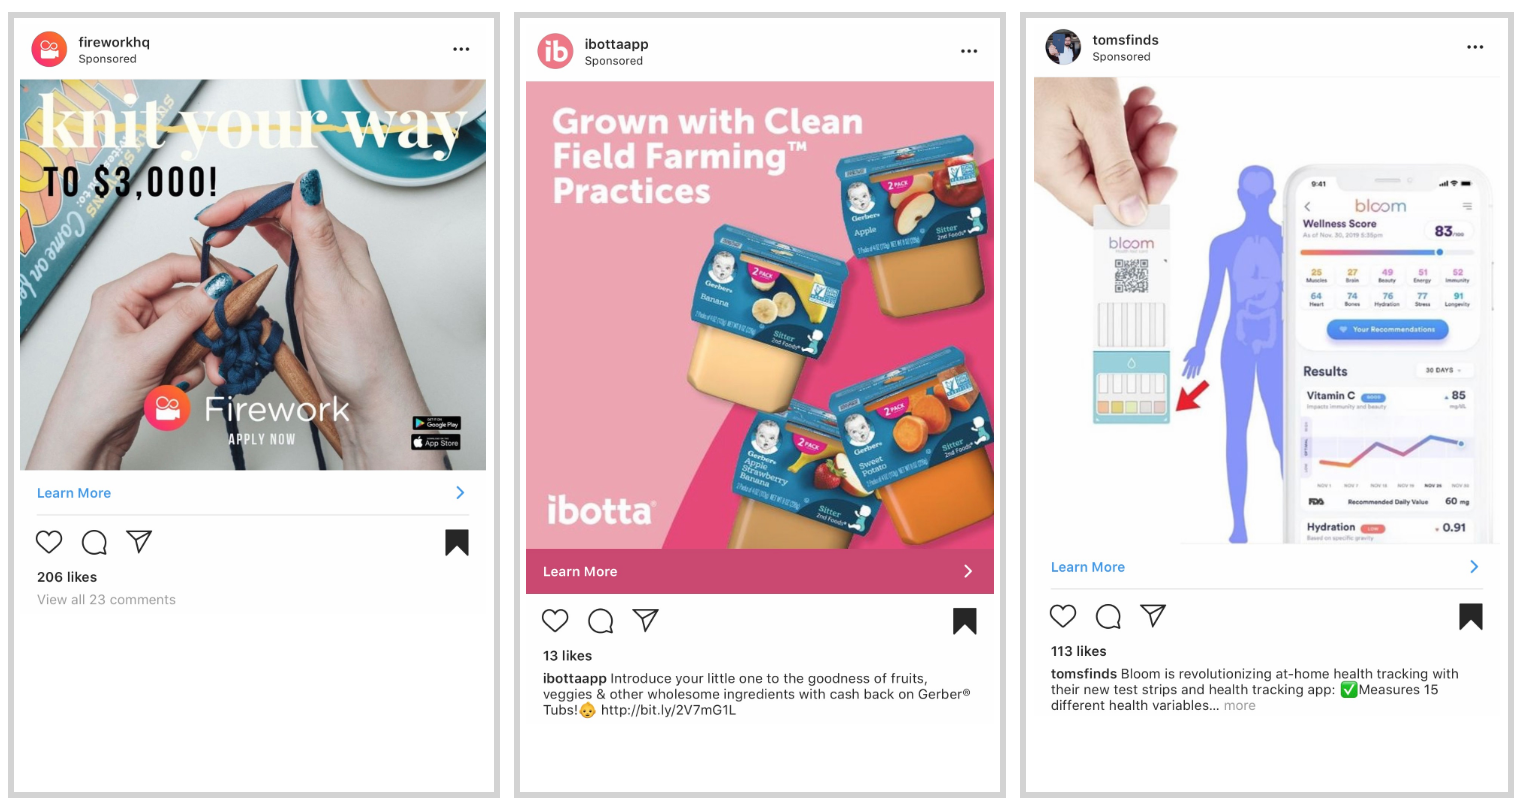 Instagram for Business: 600+ Instagram Ads to Inspire Your Next Ad Campaign